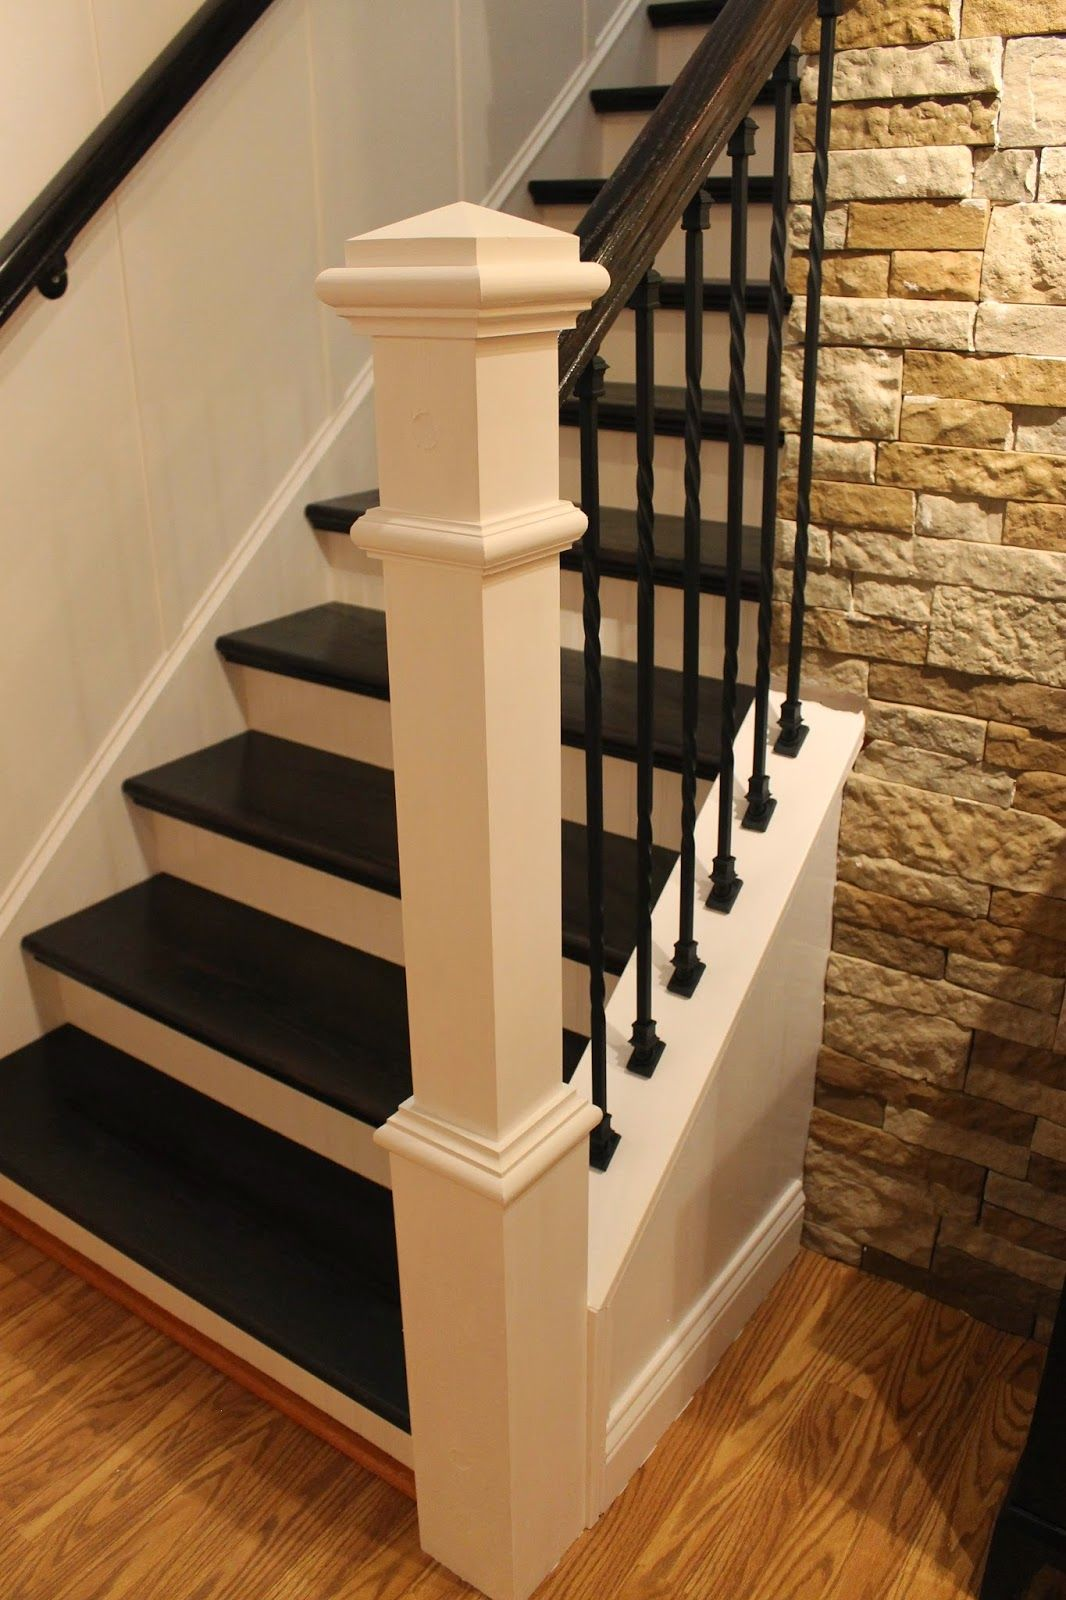 Step By Step Tutorial On How To Remodel A Carpeted Staircase Into One With  Wooden Treads And Iron Balusters